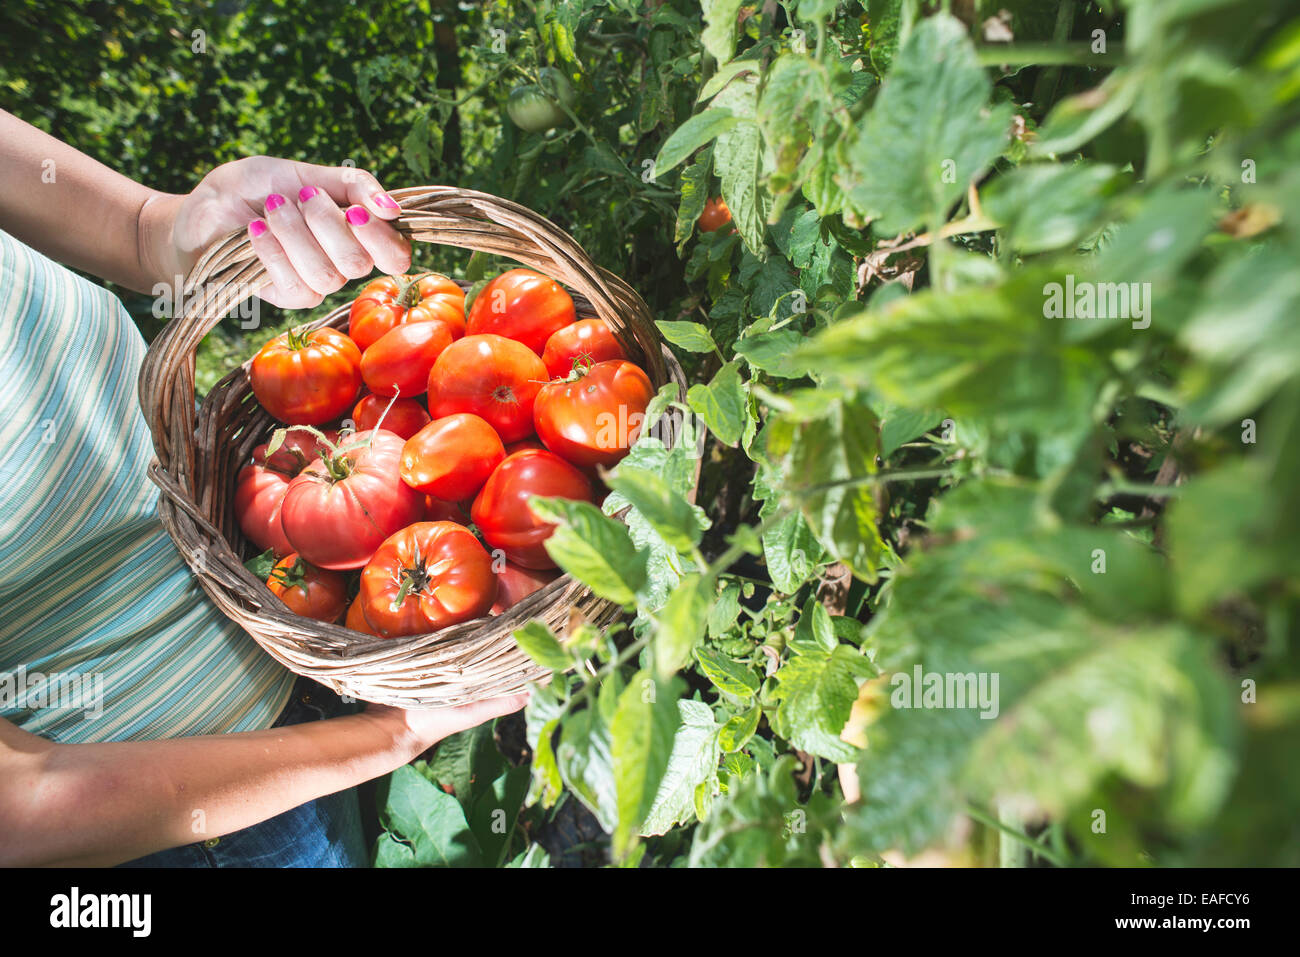 Picking tomatoes in basket. Private garden - Stock Image